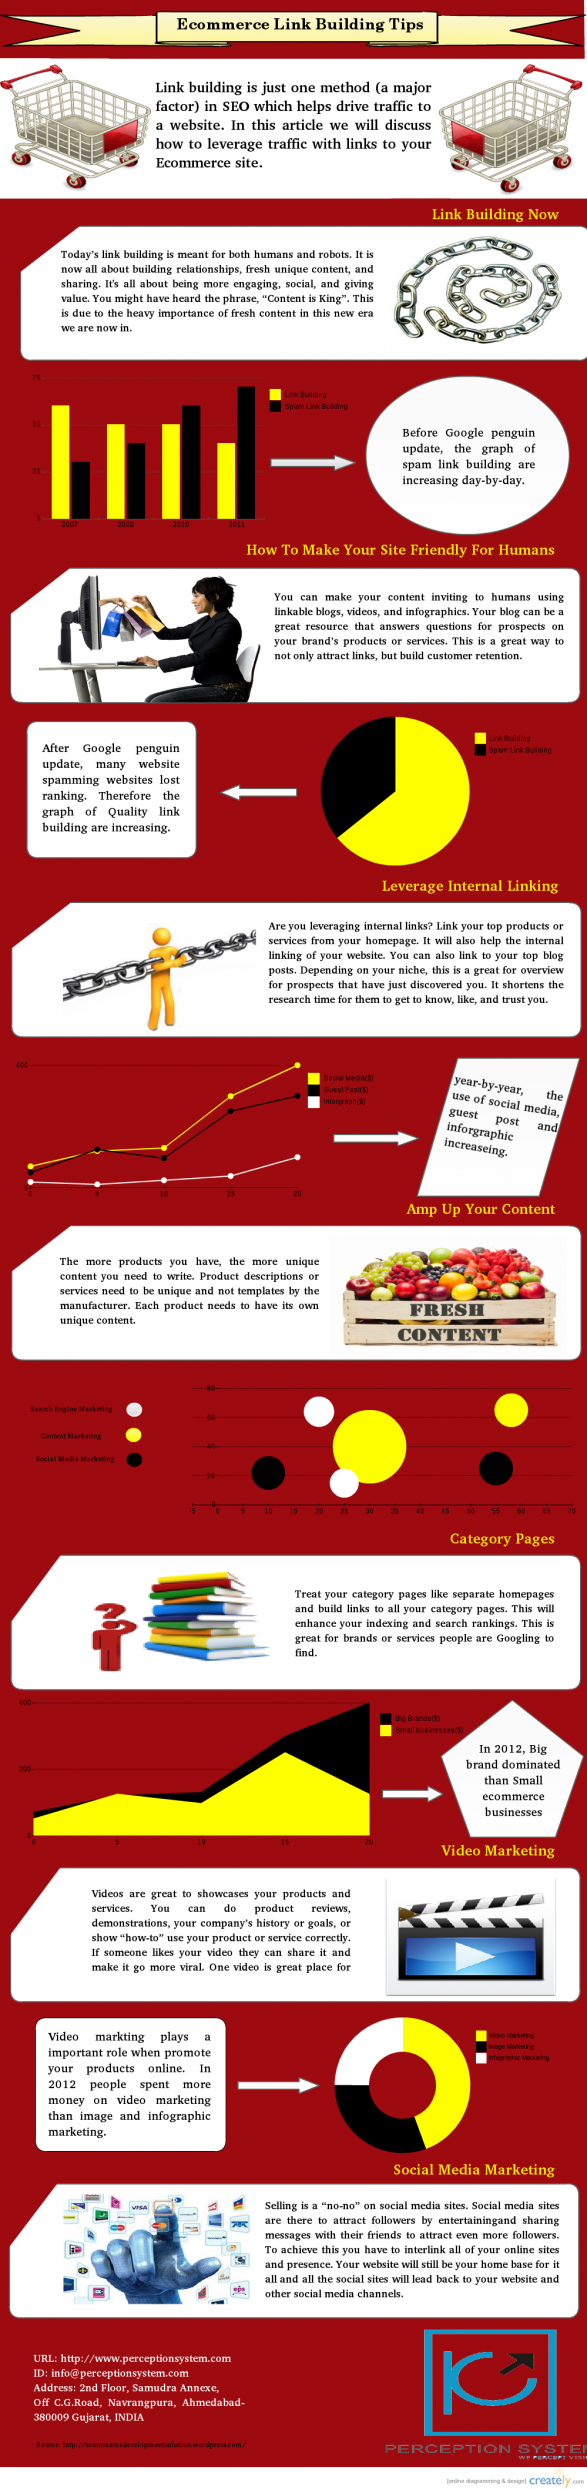 Ecommerce Link Building Tips & Strategies in 2013: Infographic